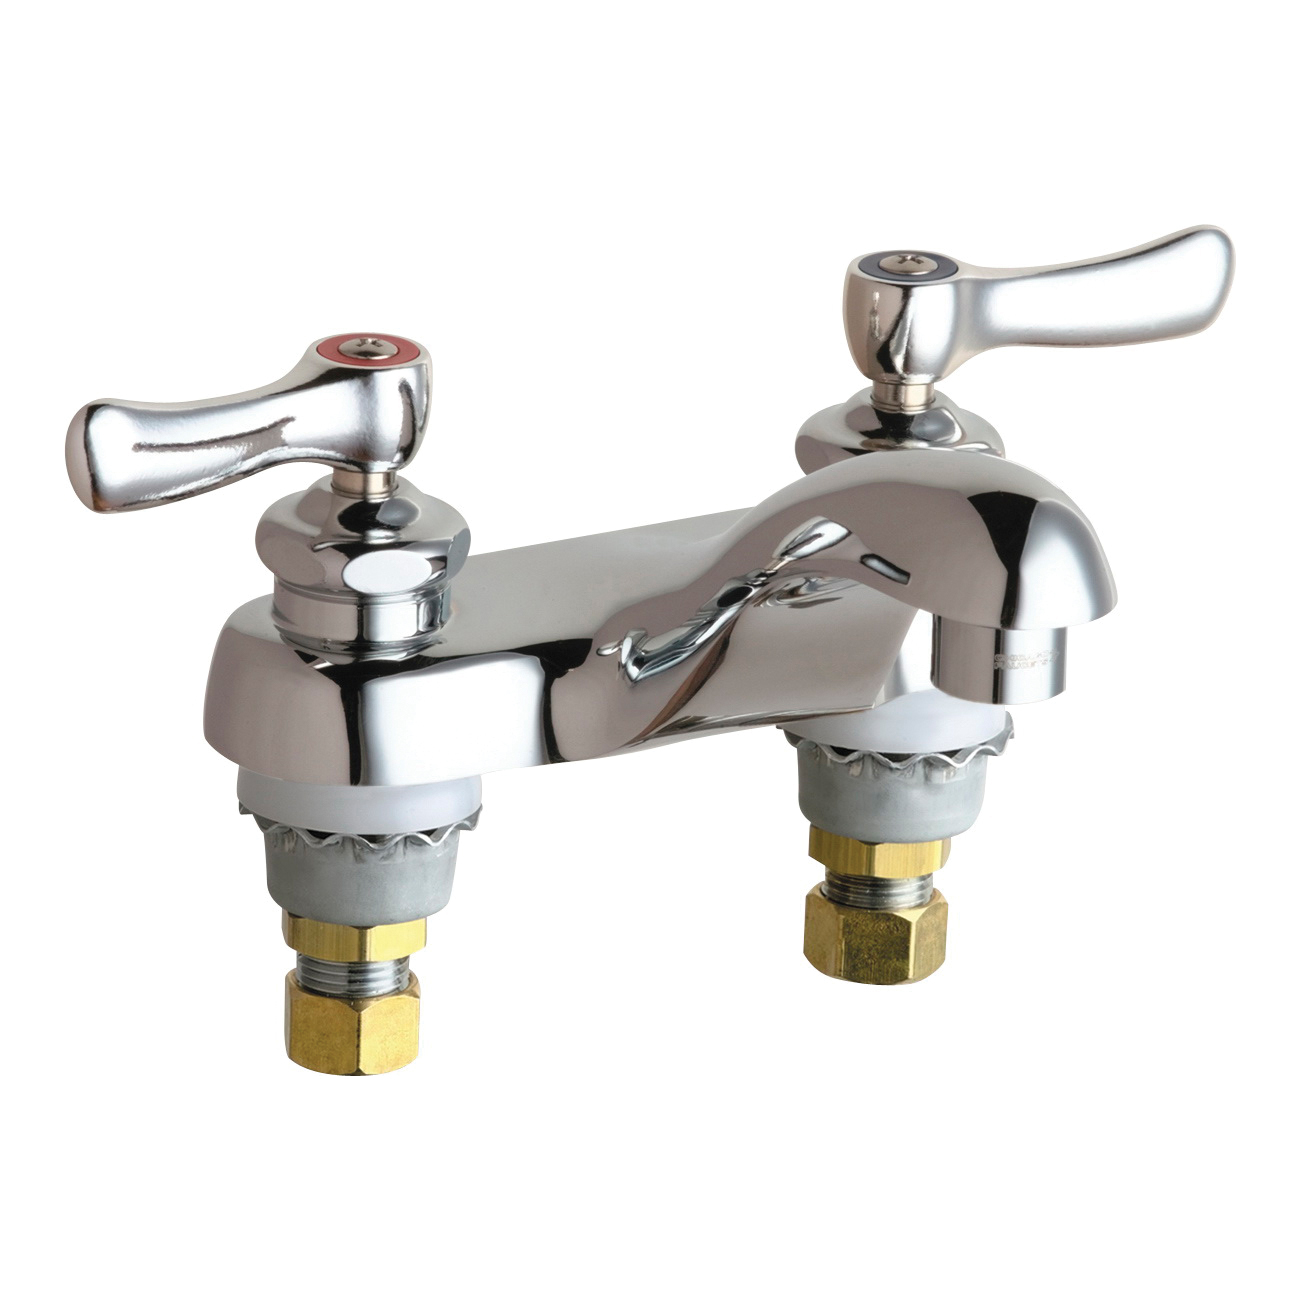 Chicago Faucet® 802-VABCP Lavatory Sink Faucet, Chrome Plated, 2 Handles, 2.2 gpm